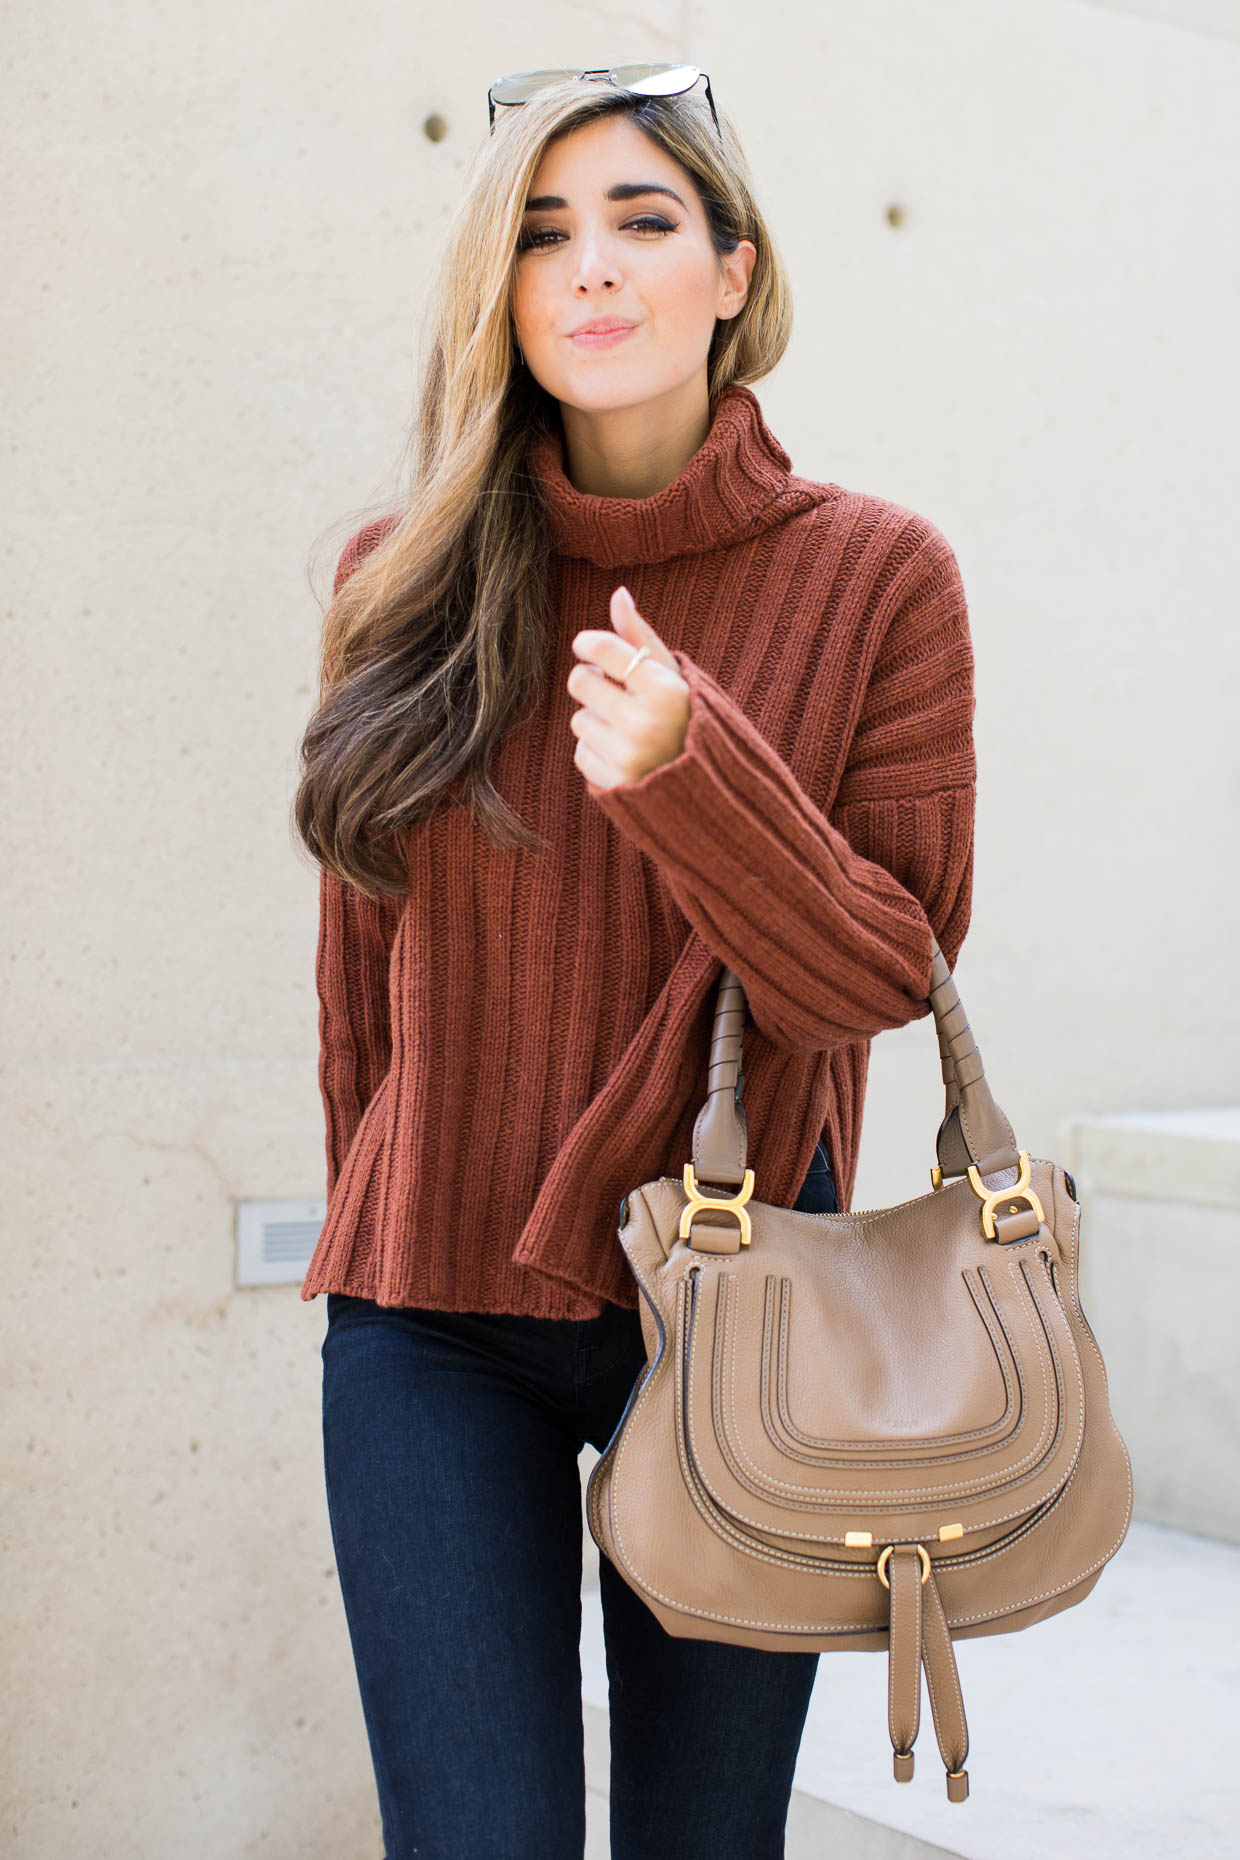 """Fashion blogger the Darling Detail is wearing a J.O.A. Turtleneck Sweater, FRAME """"Le High Skinny"""" High Rise Crop Jeans, LE SPECS 'The Prince' 57mm Sunglasses, Chloe 'Marcie - Small' Leather Satchel, and Larsson & Jennings 'Lugano' Mesh Strap Watch"""